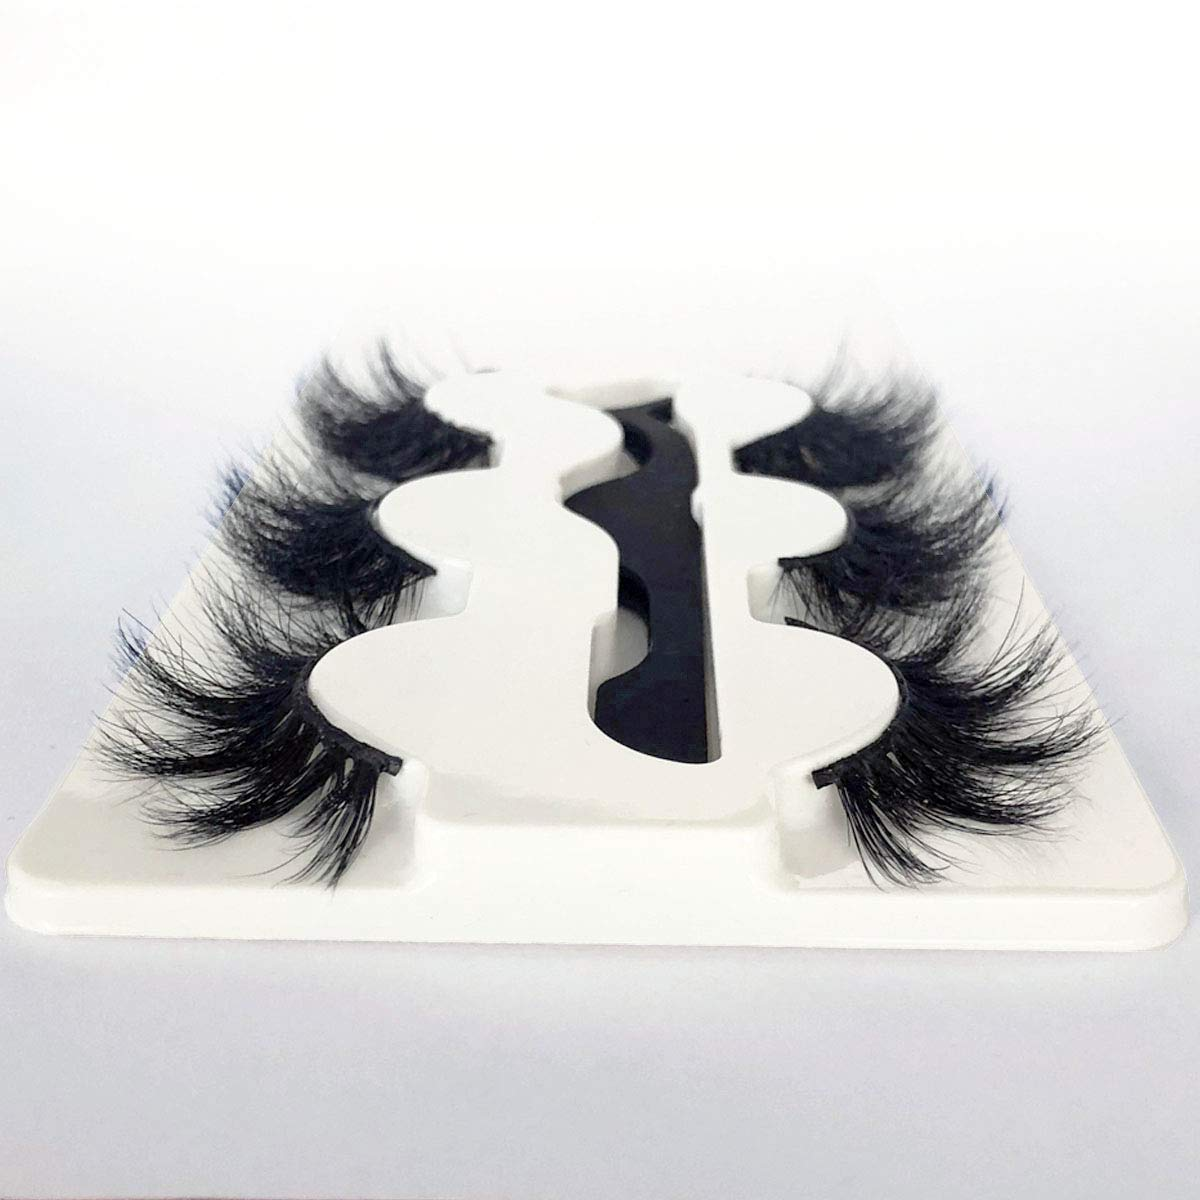 mink lashes vendor from China